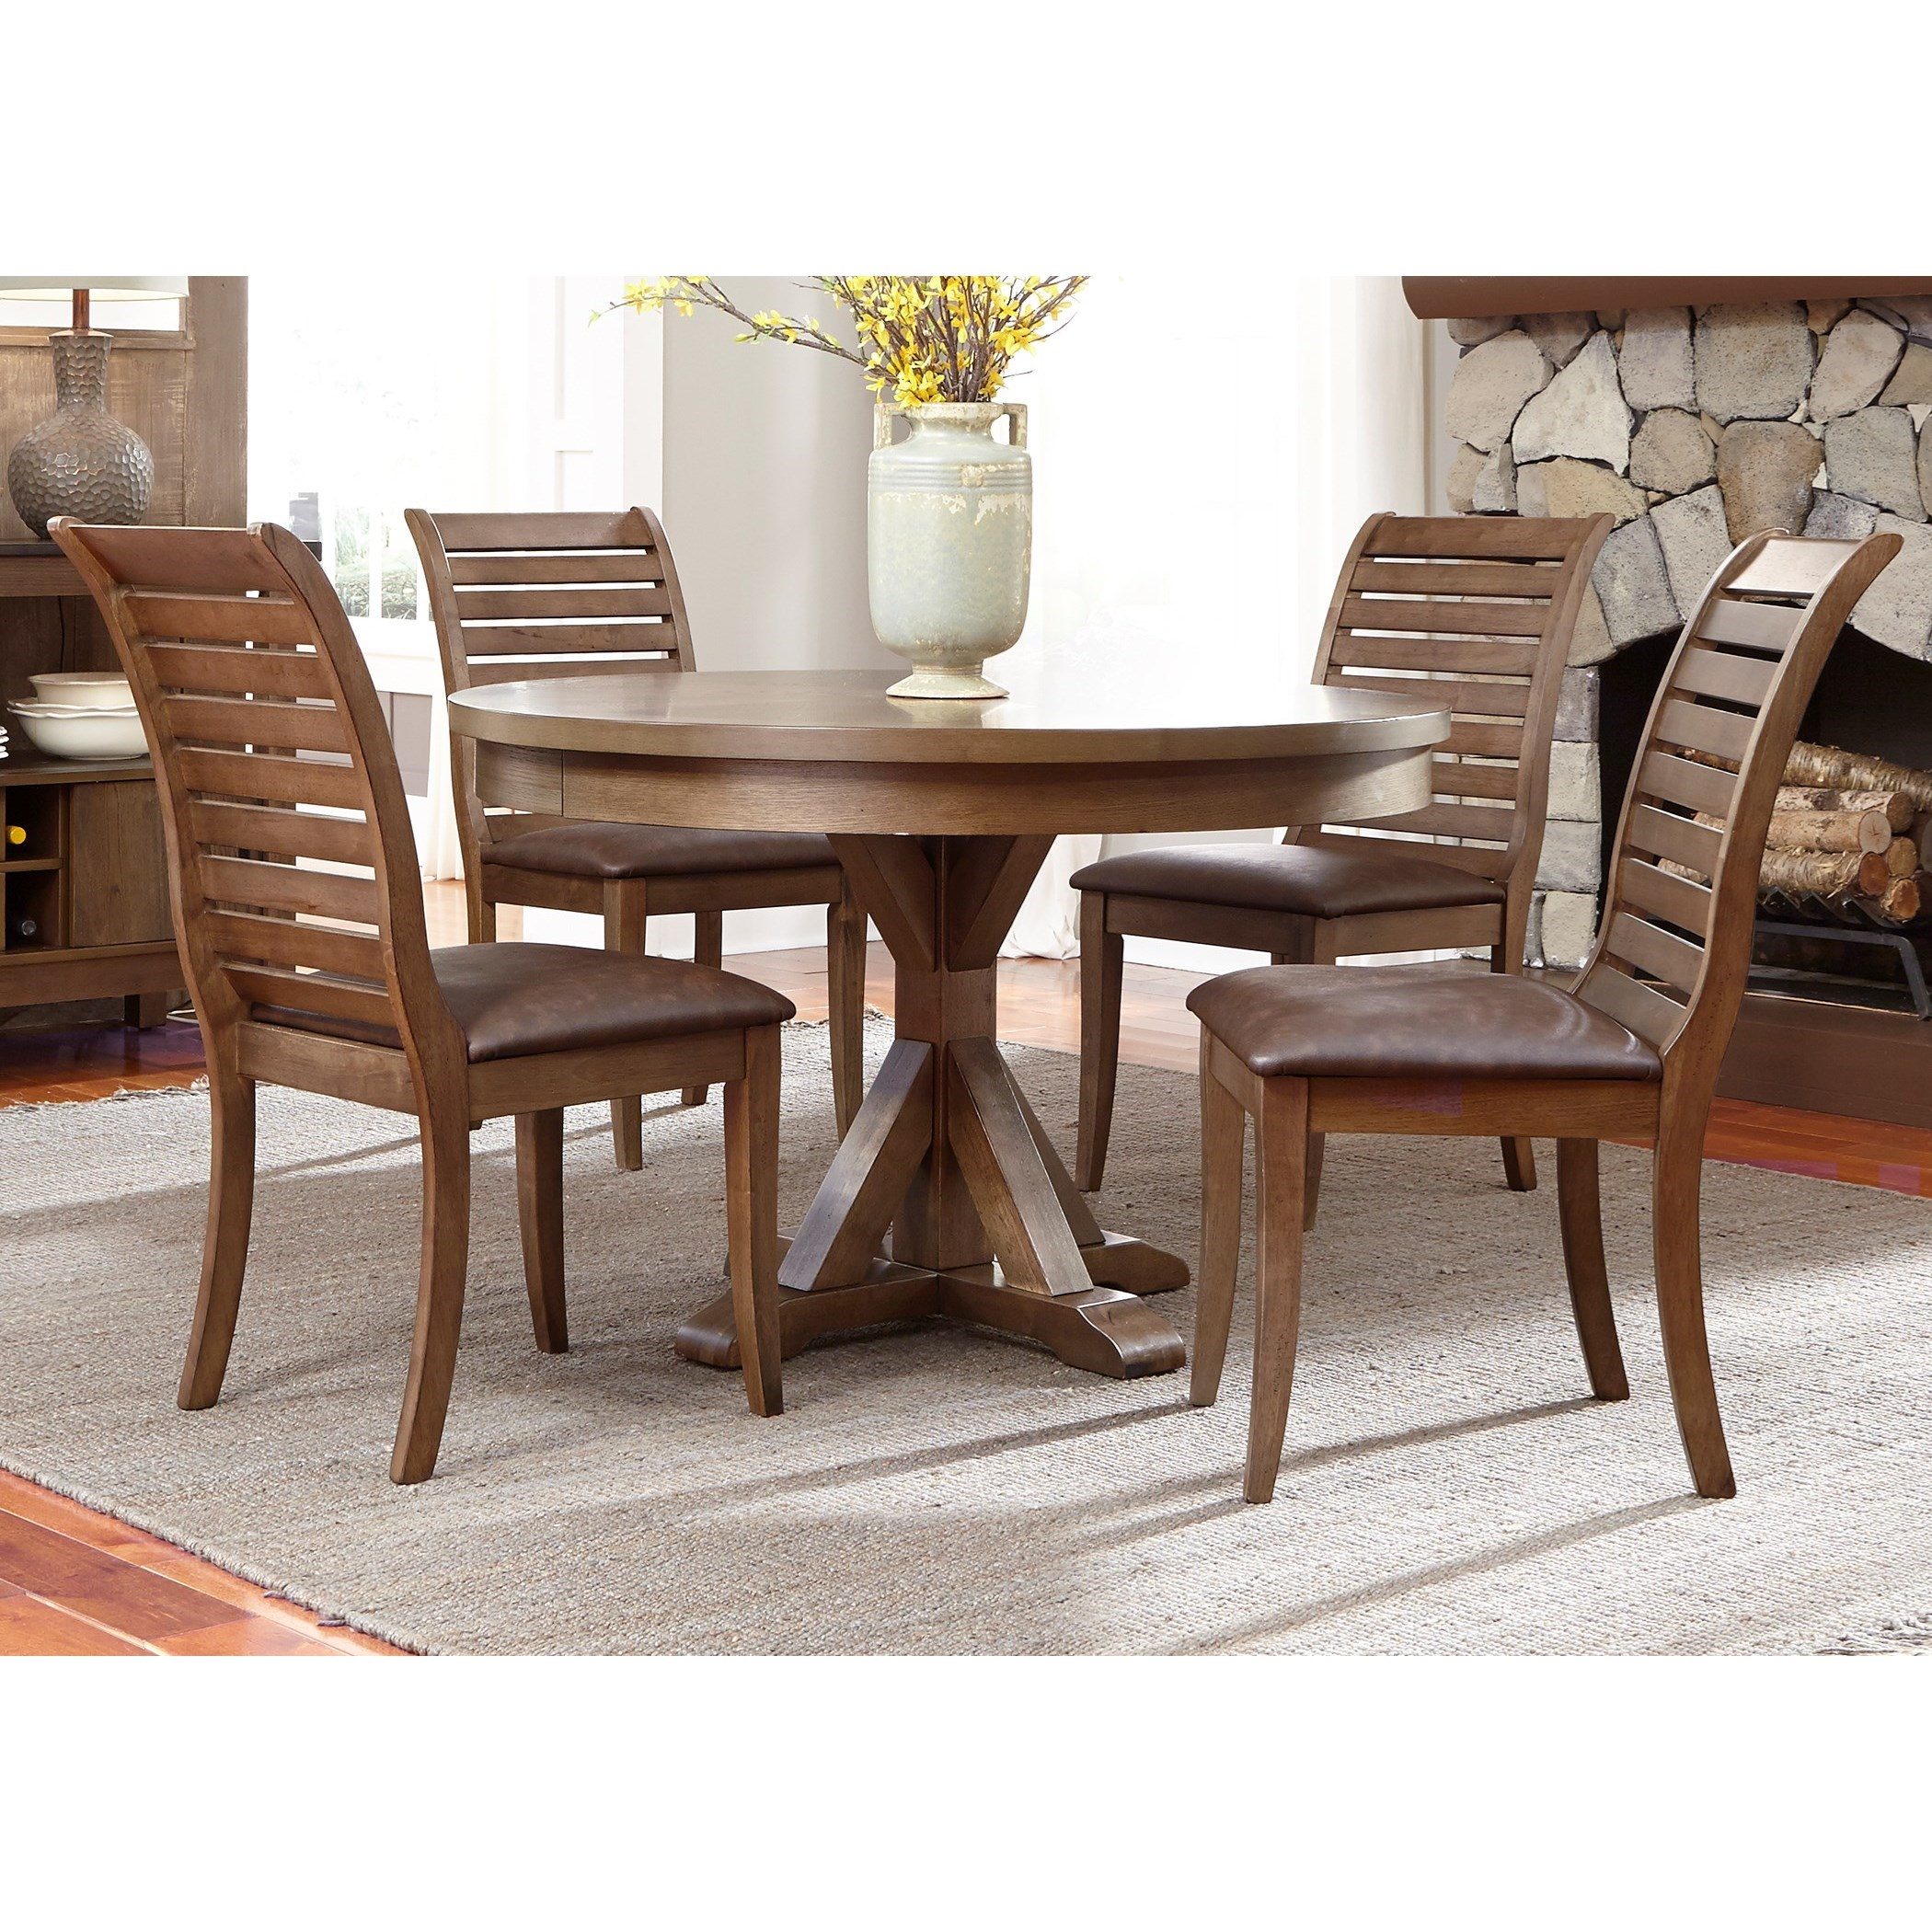 Liberty Furniture Bayside 5 Piece Round Table Set  - Item Number: 185-CD-O5ROS